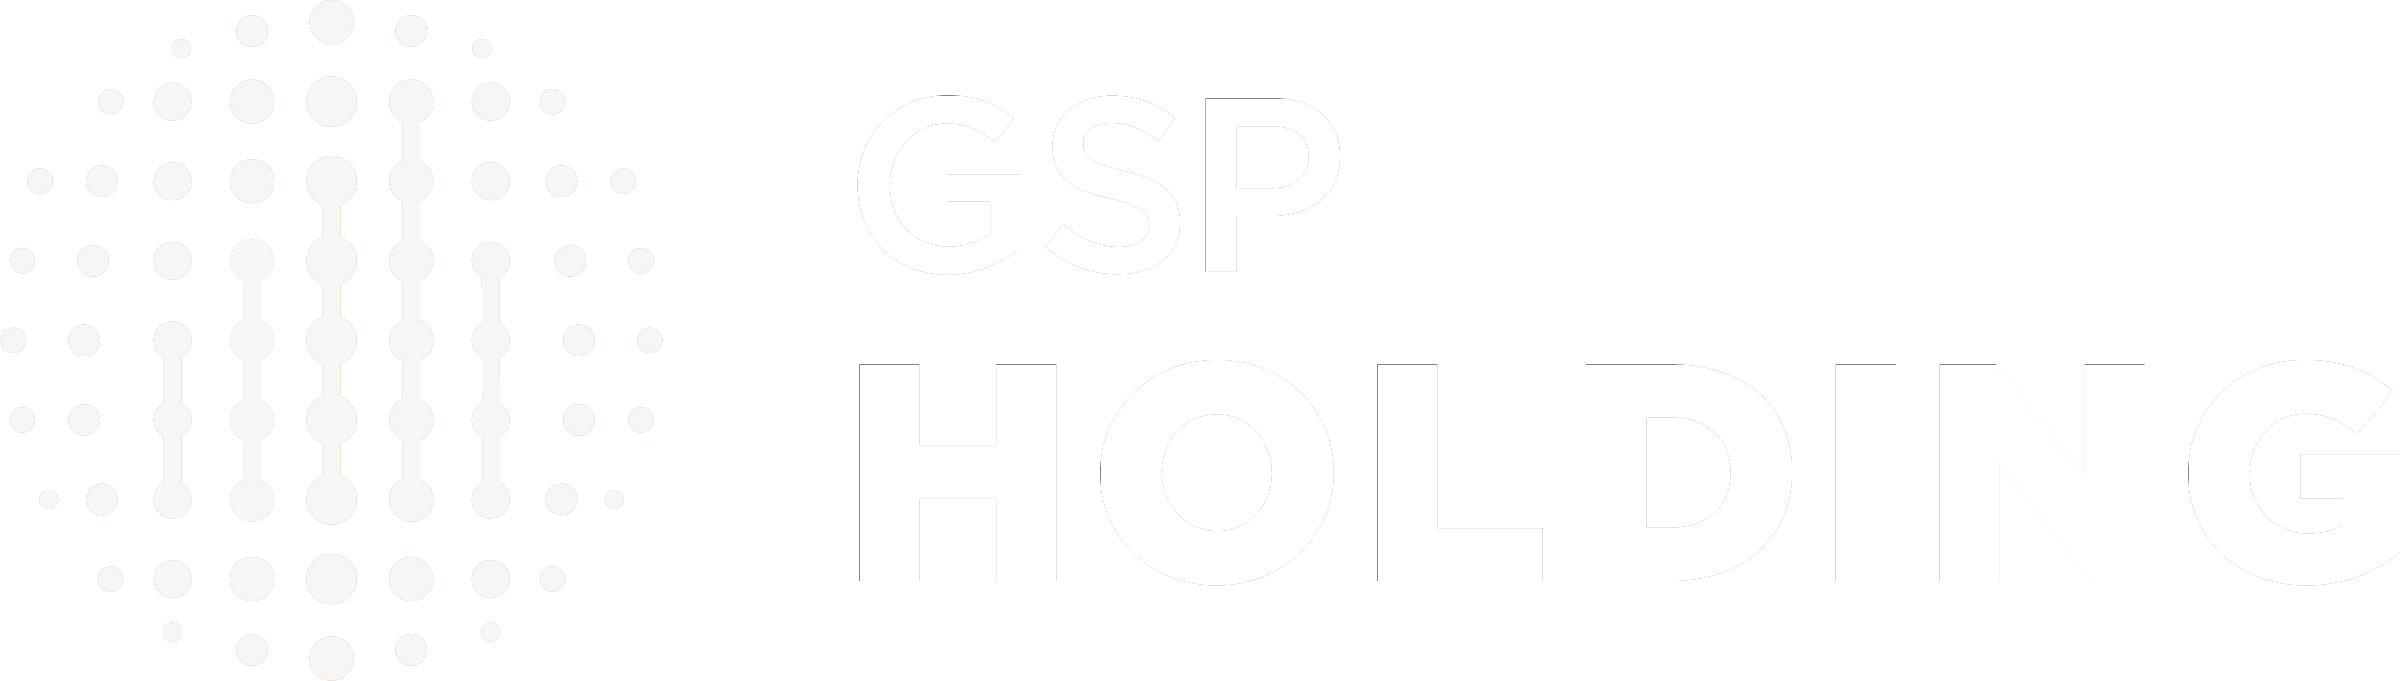 GSP Holding